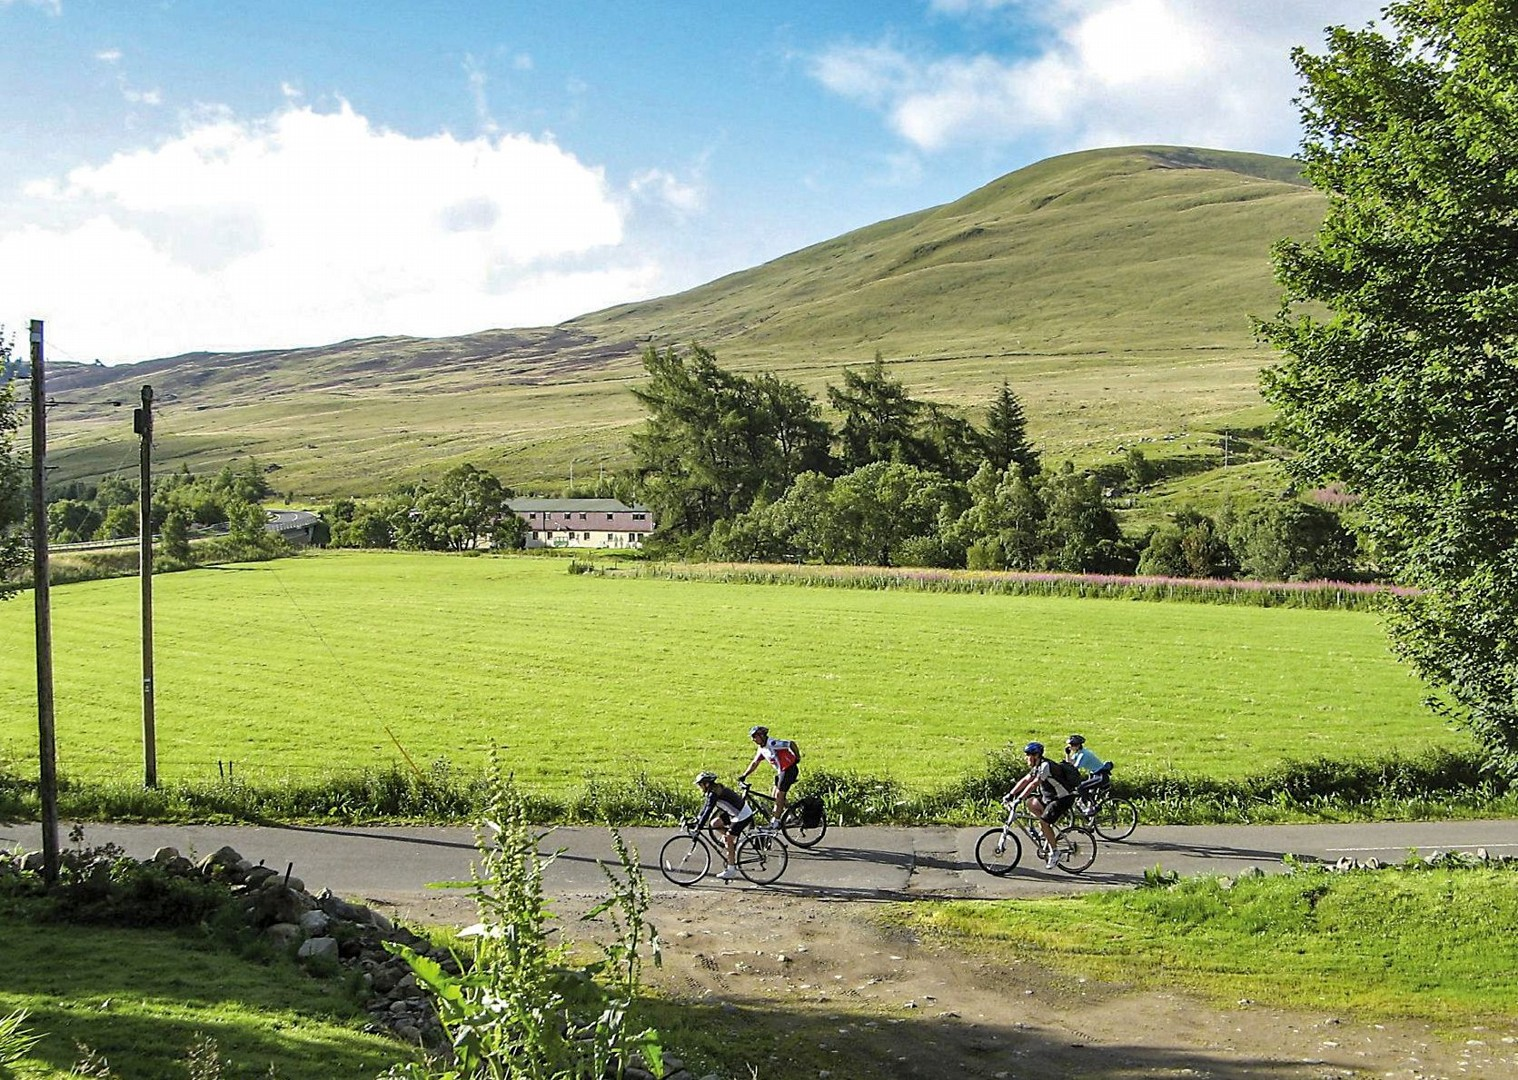 22-day-guided-cycling-lands-end-to-john-ogroats-road-cycling-holiday-in-uk.jpg - UK - Land's End to John O'Groats Explorer (22 days) - Guided Cycling Holiday - Road Cycling